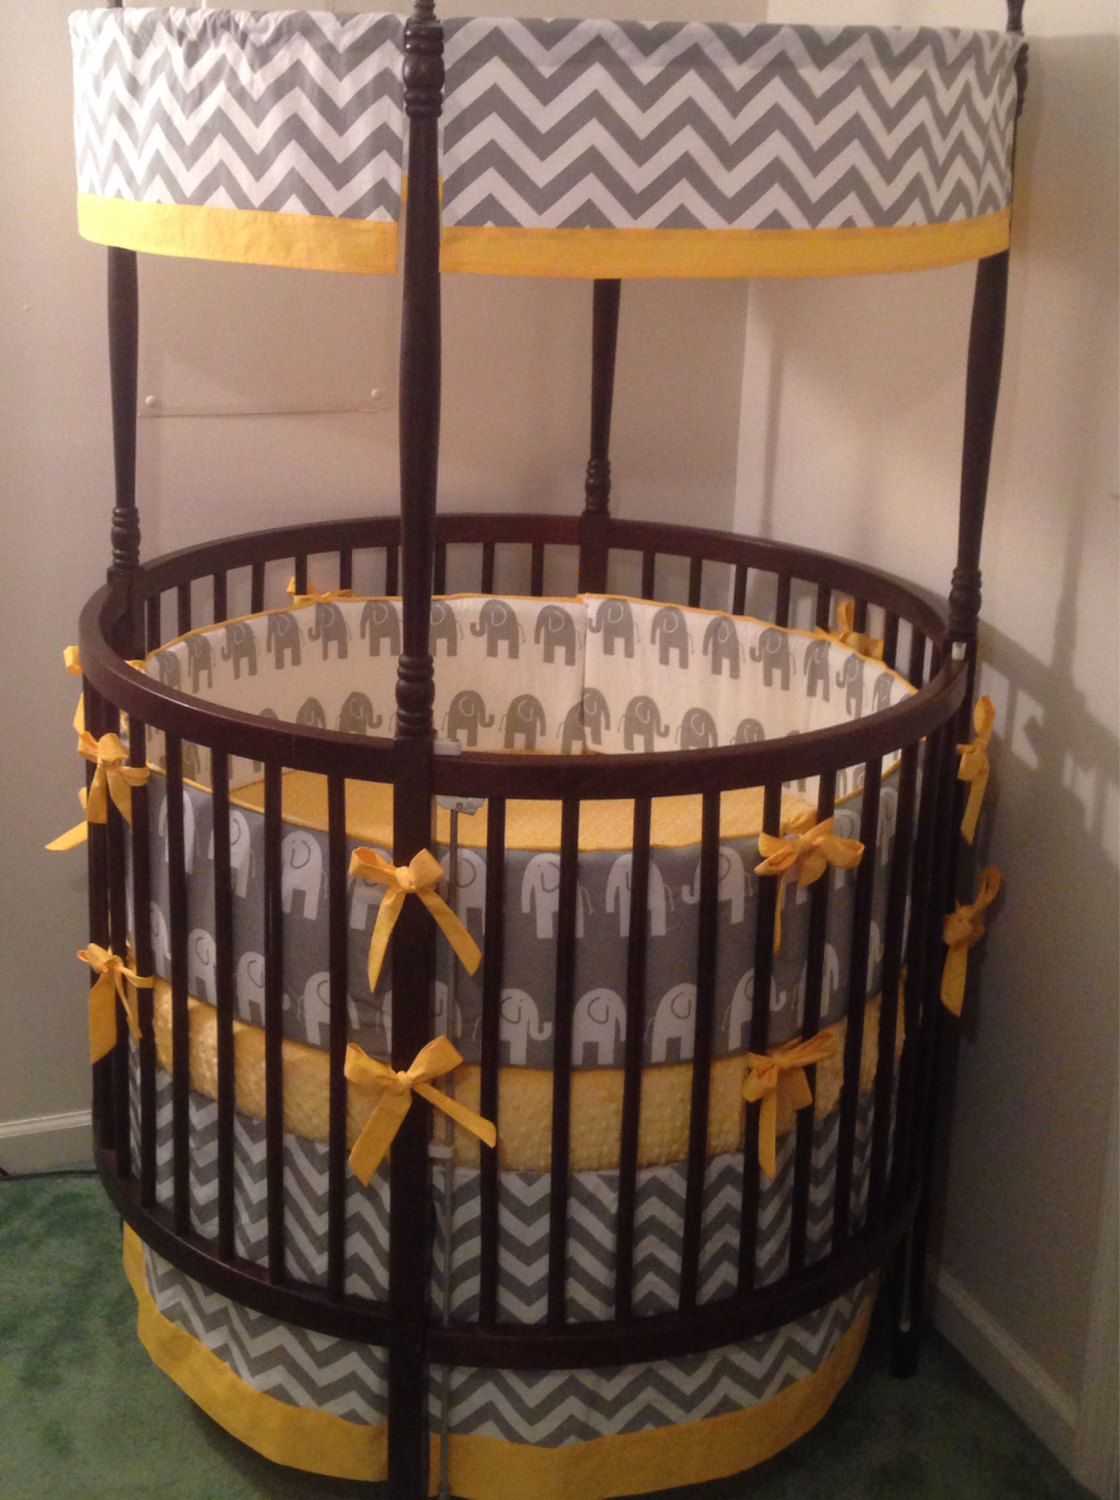 Bassett Baby Crib | Mini Crib Walmart | Newborn Furniture Packages